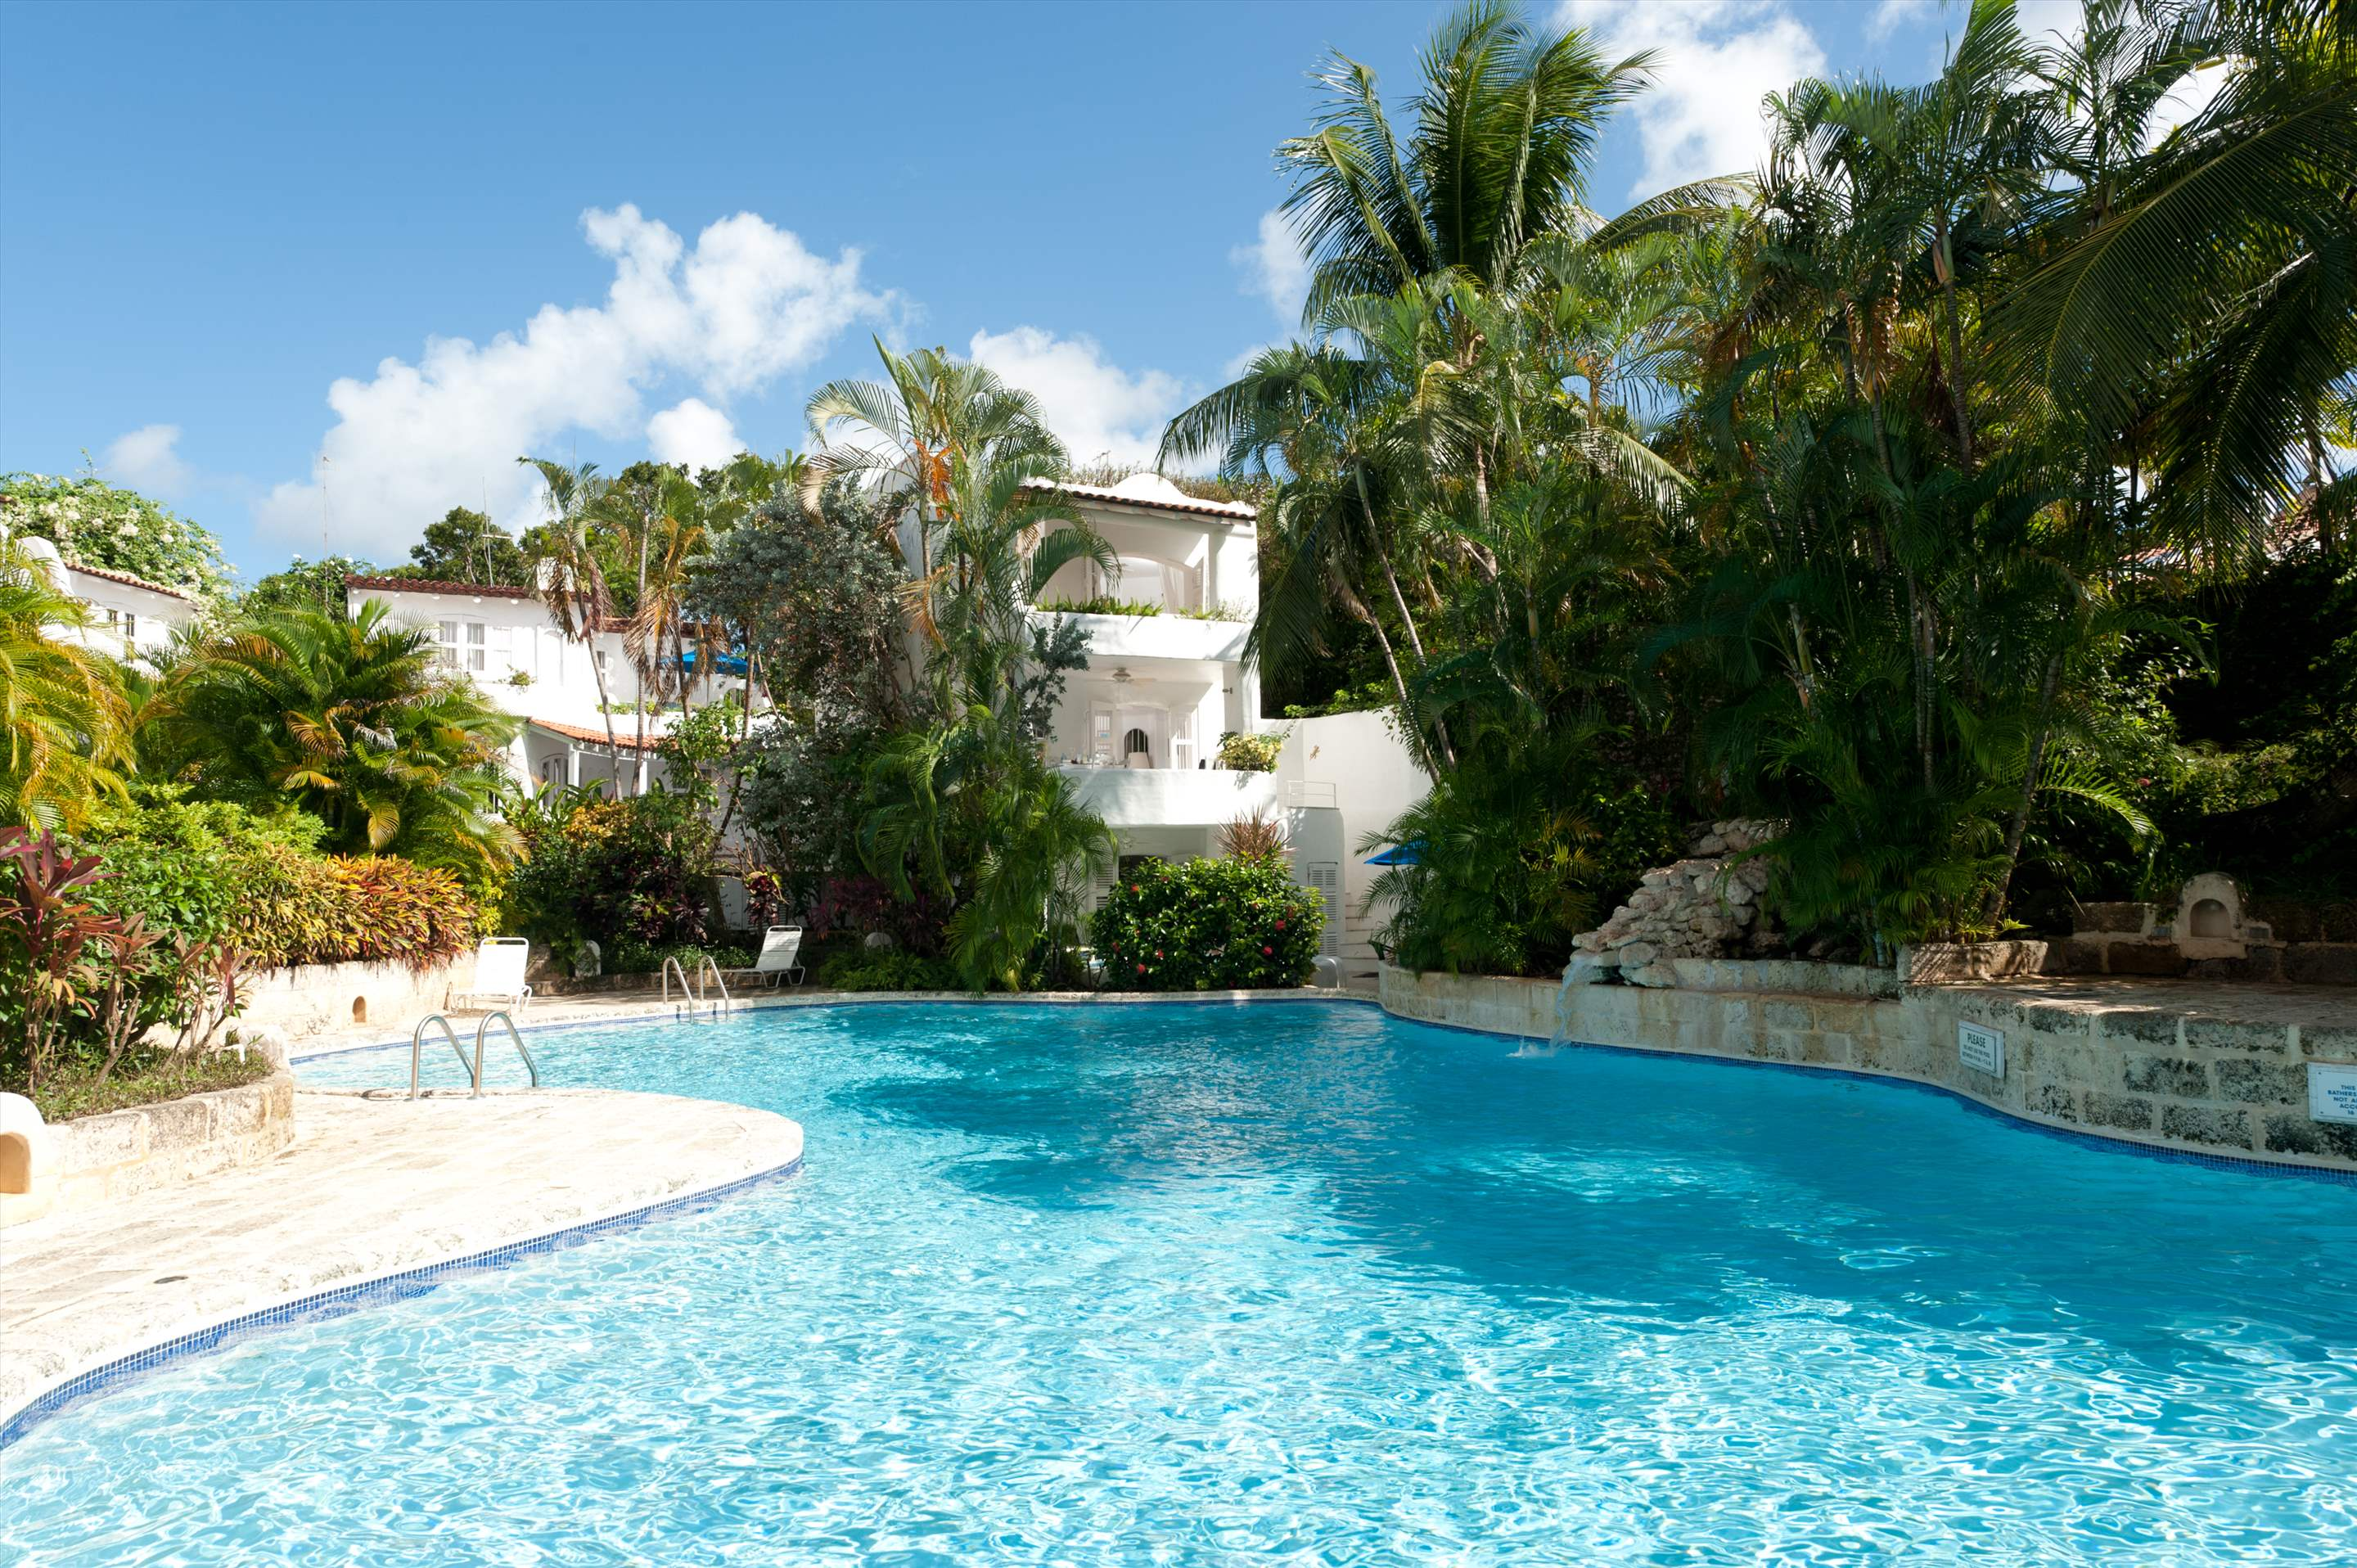 Merlin Bay Gingerbread, 3 bedroom villa in St. James & West Coast, Barbados